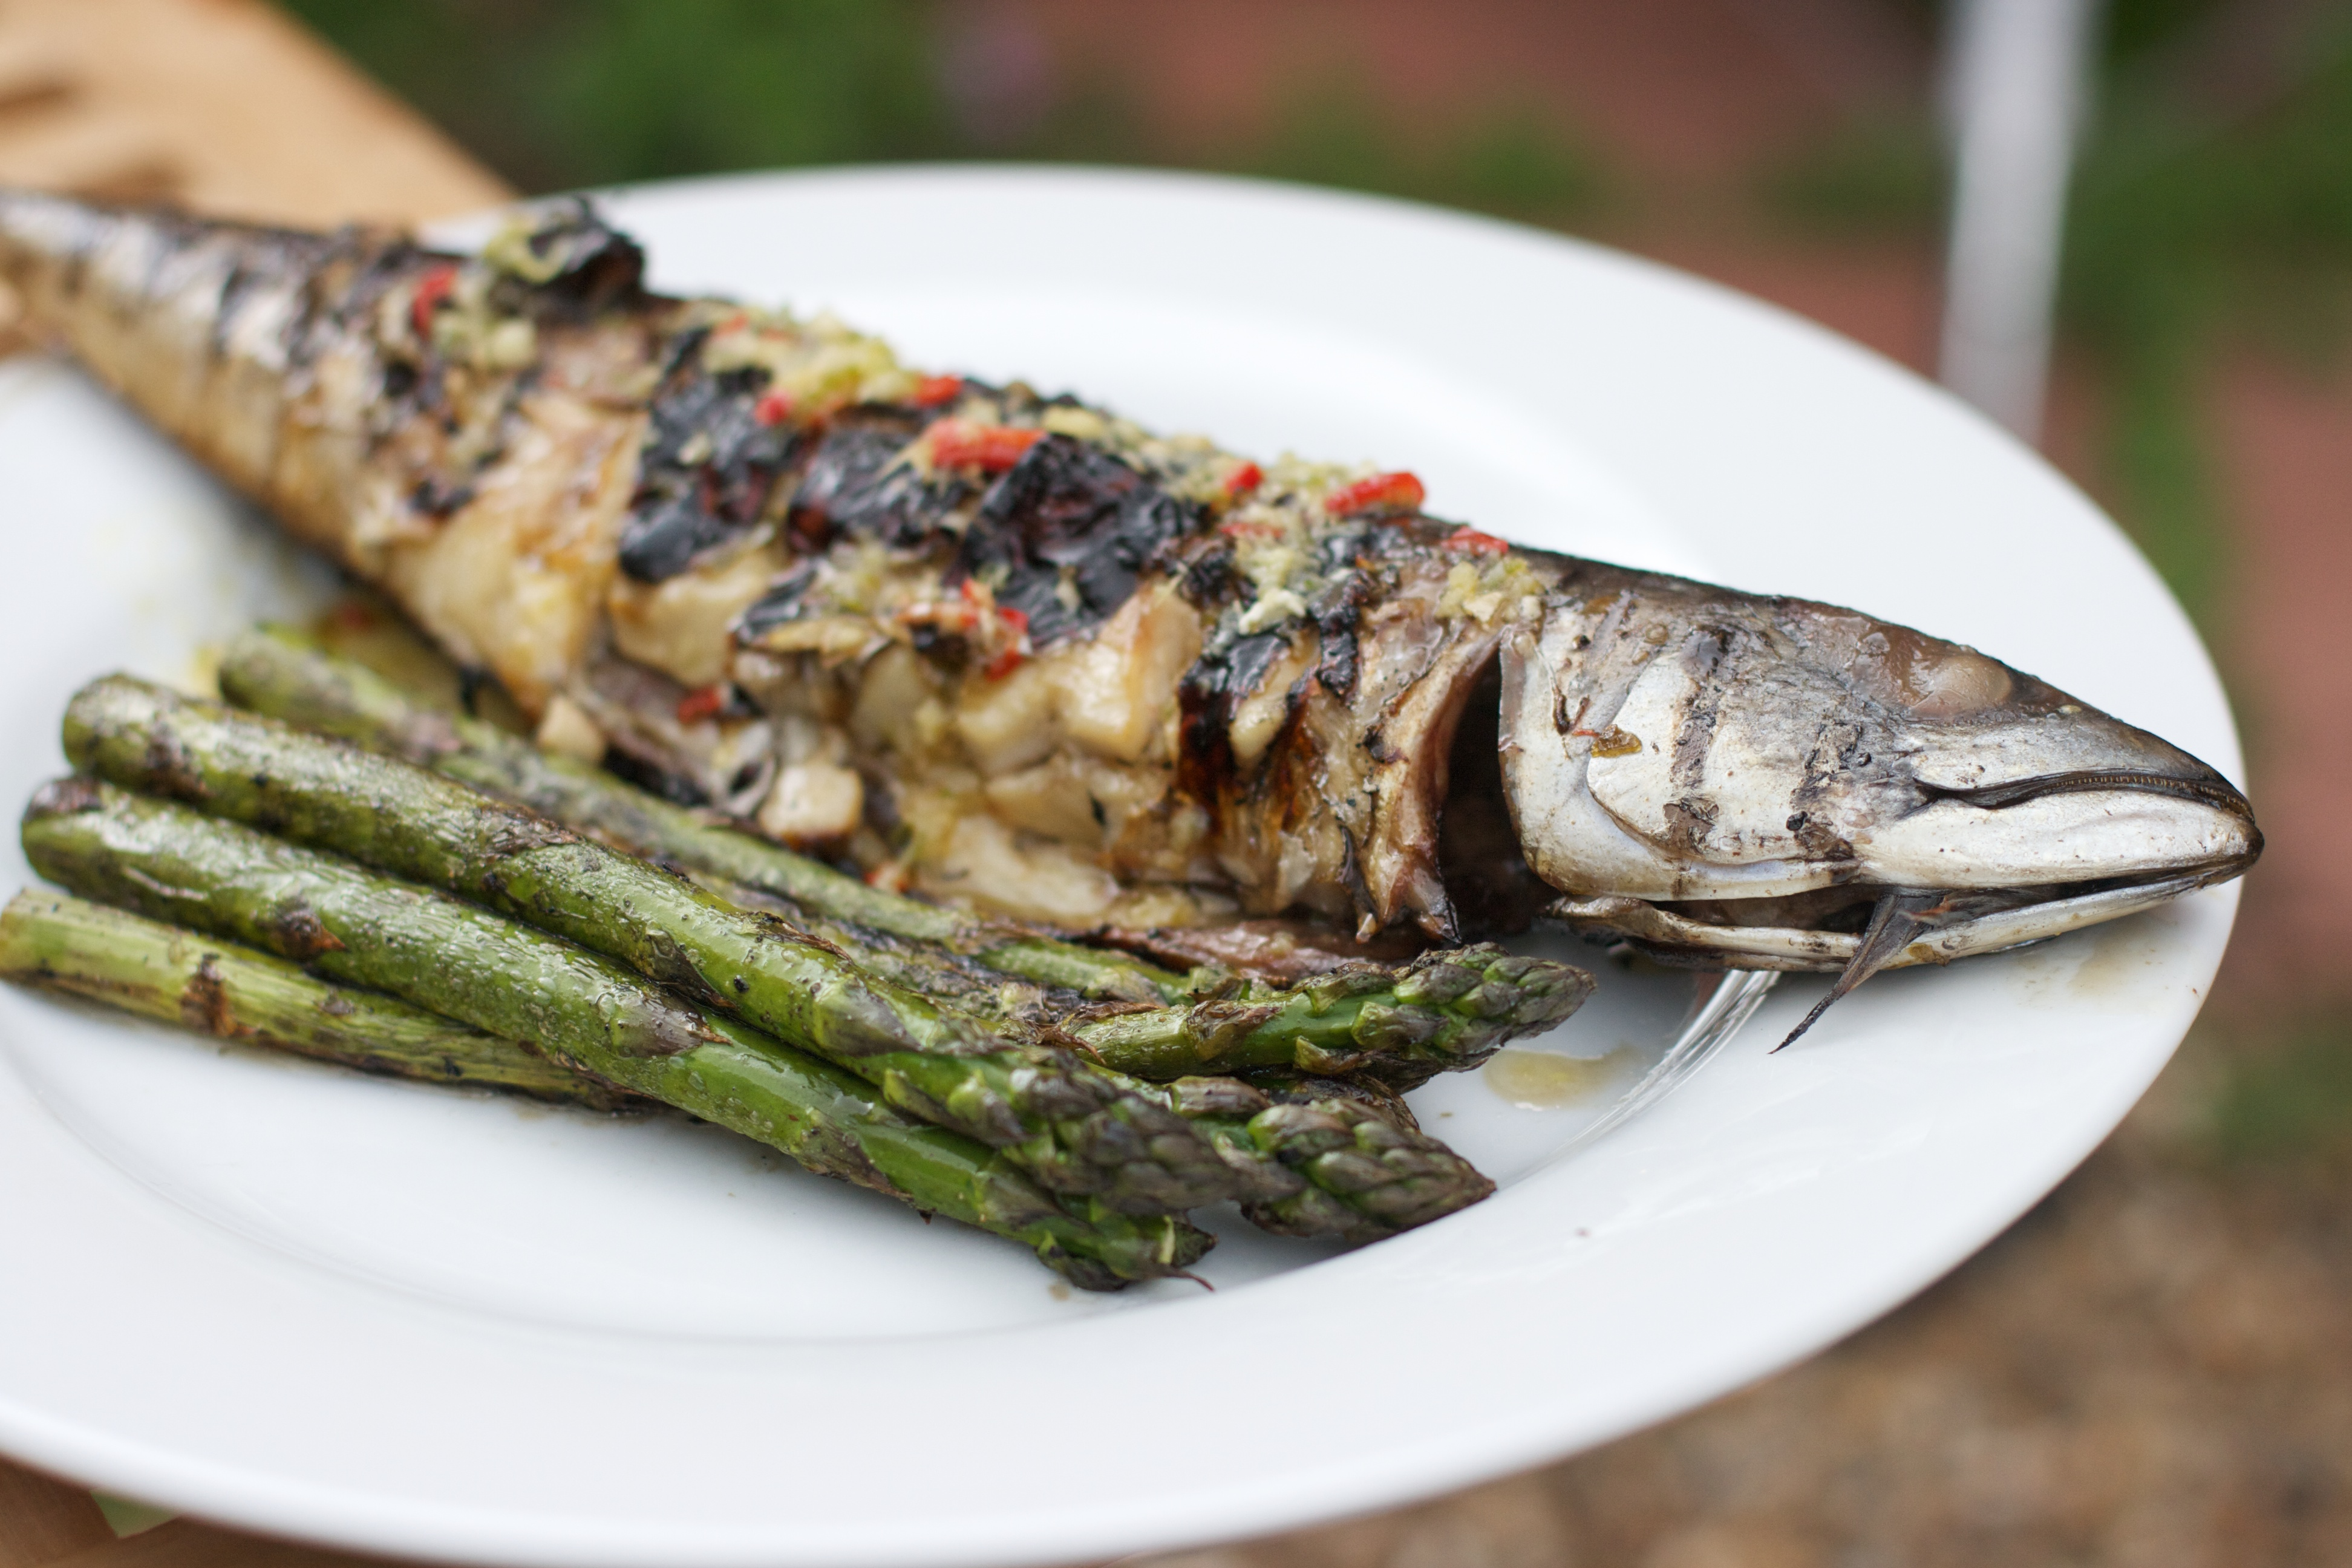 Barbecued Mackerel with Asparagus